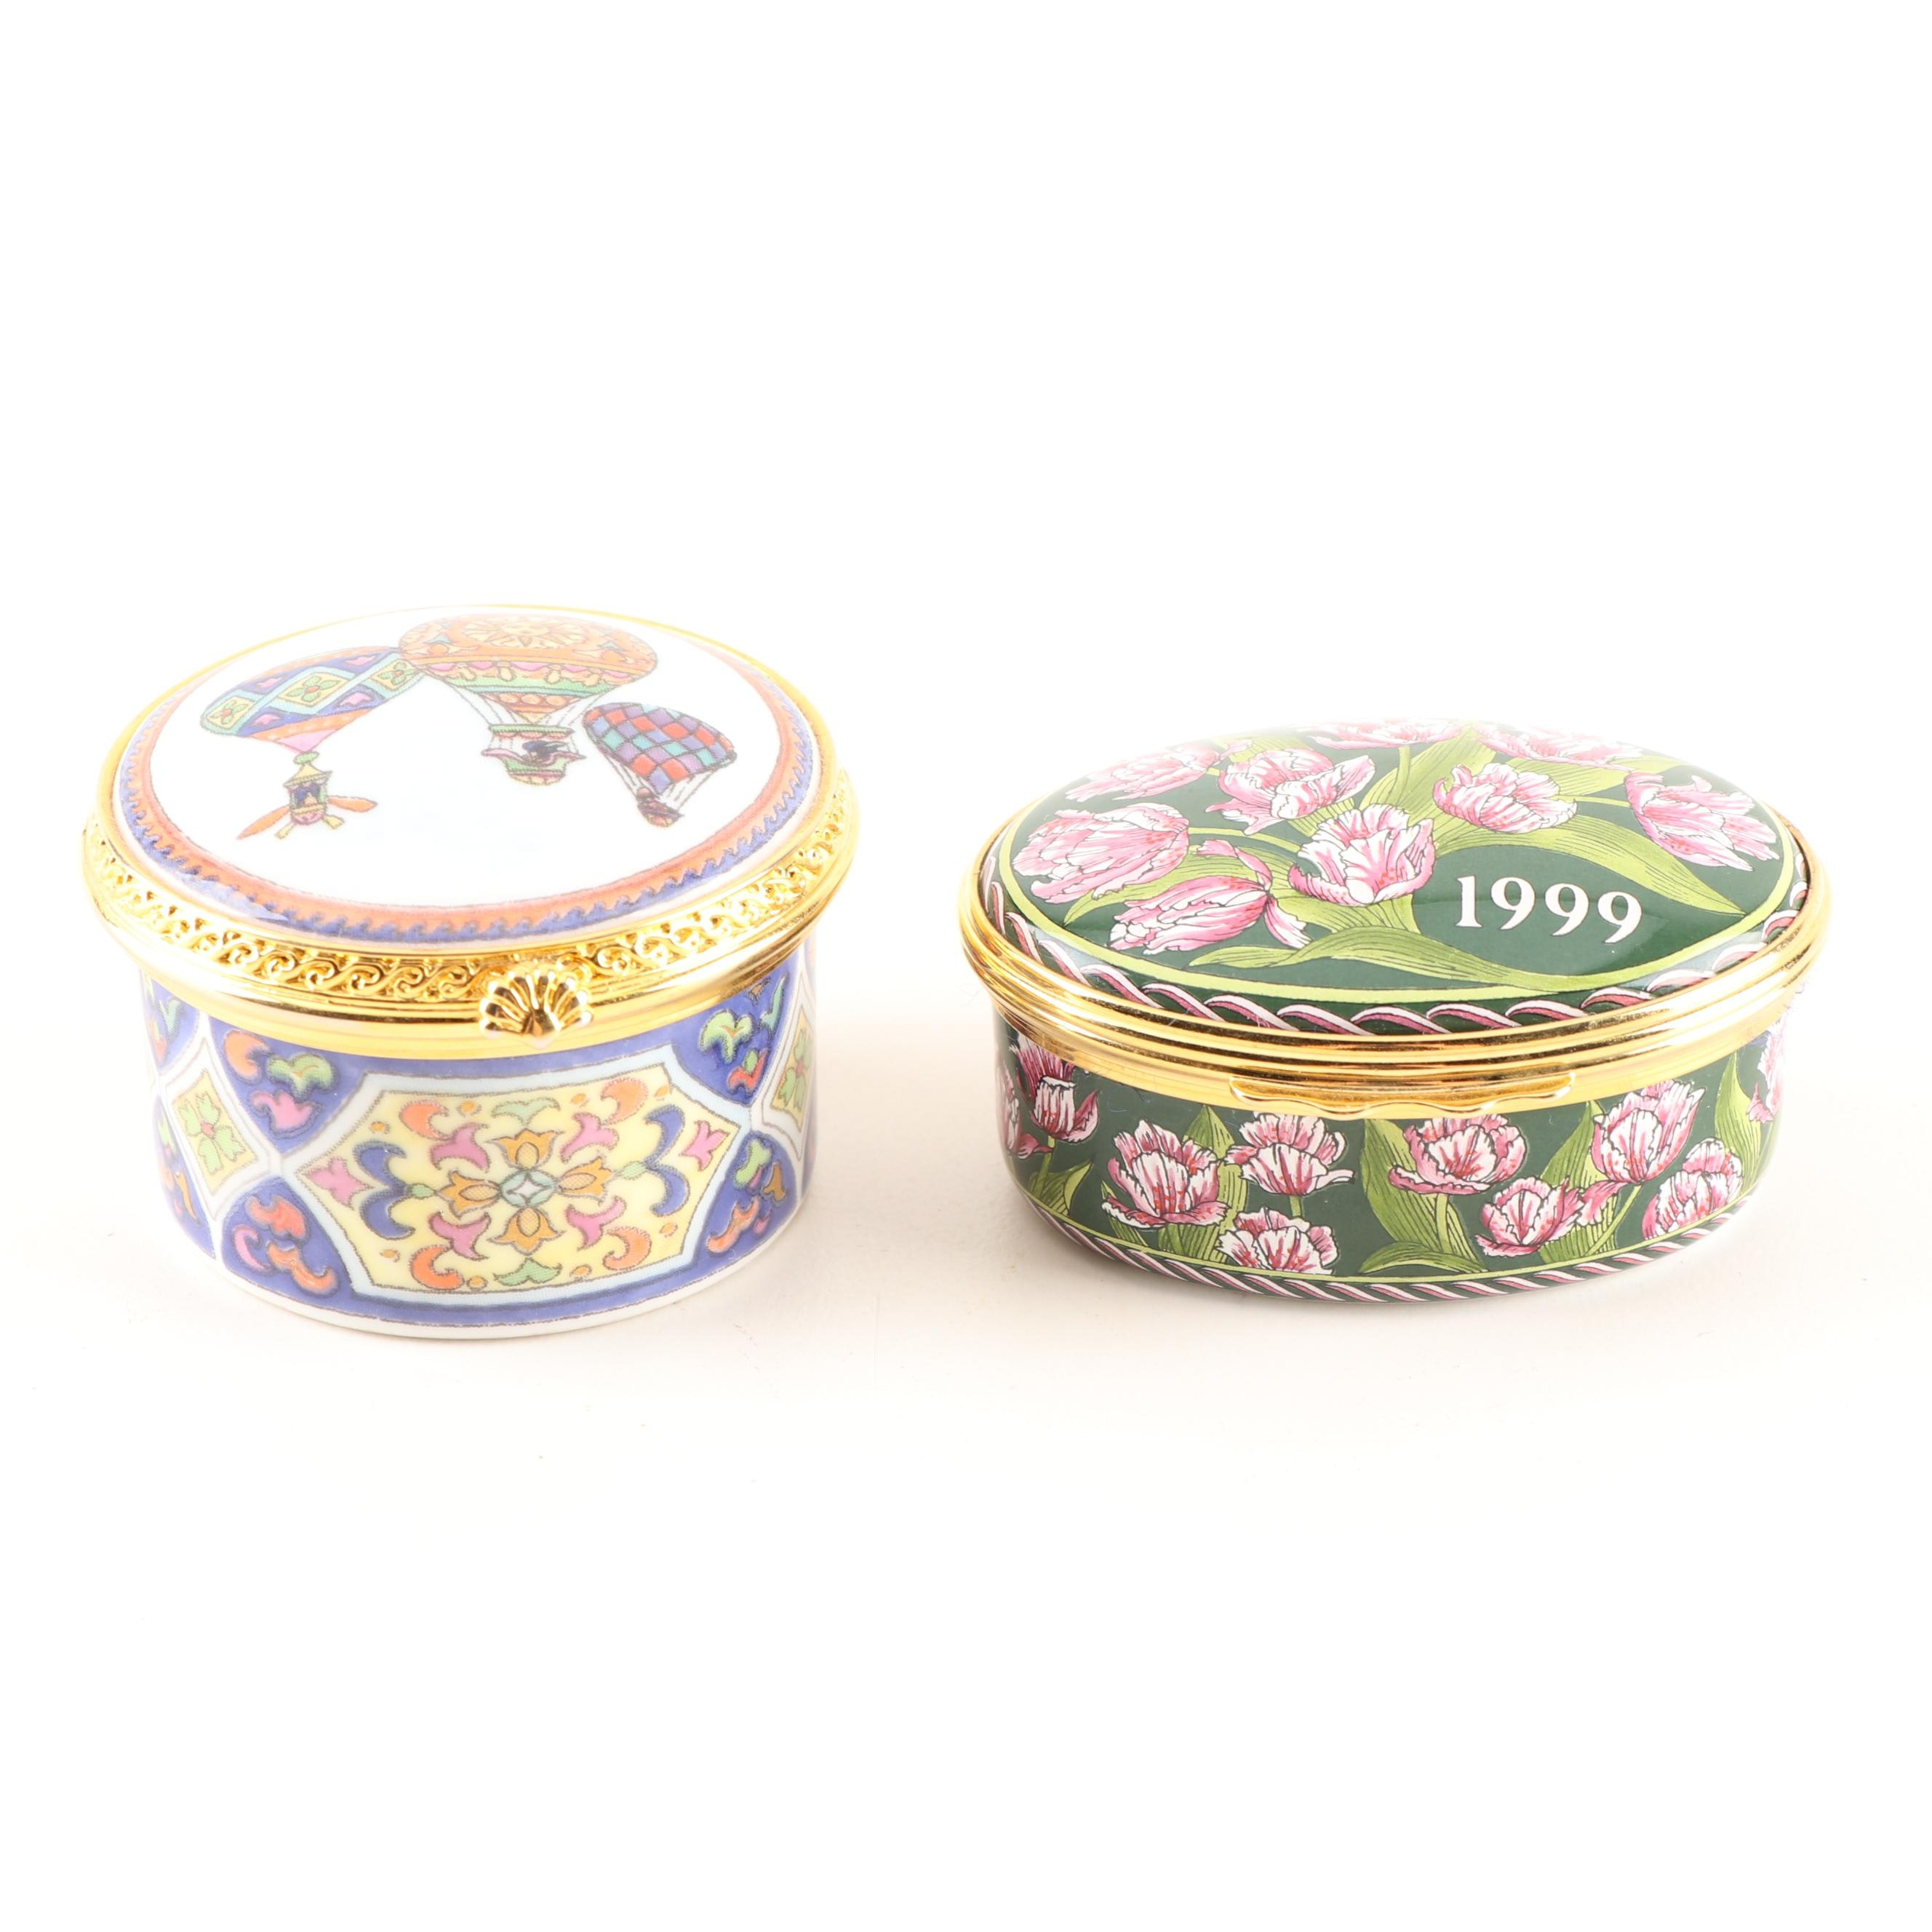 Hand-Painted Porcelain Pill Boxes Featuring Royal Worcester